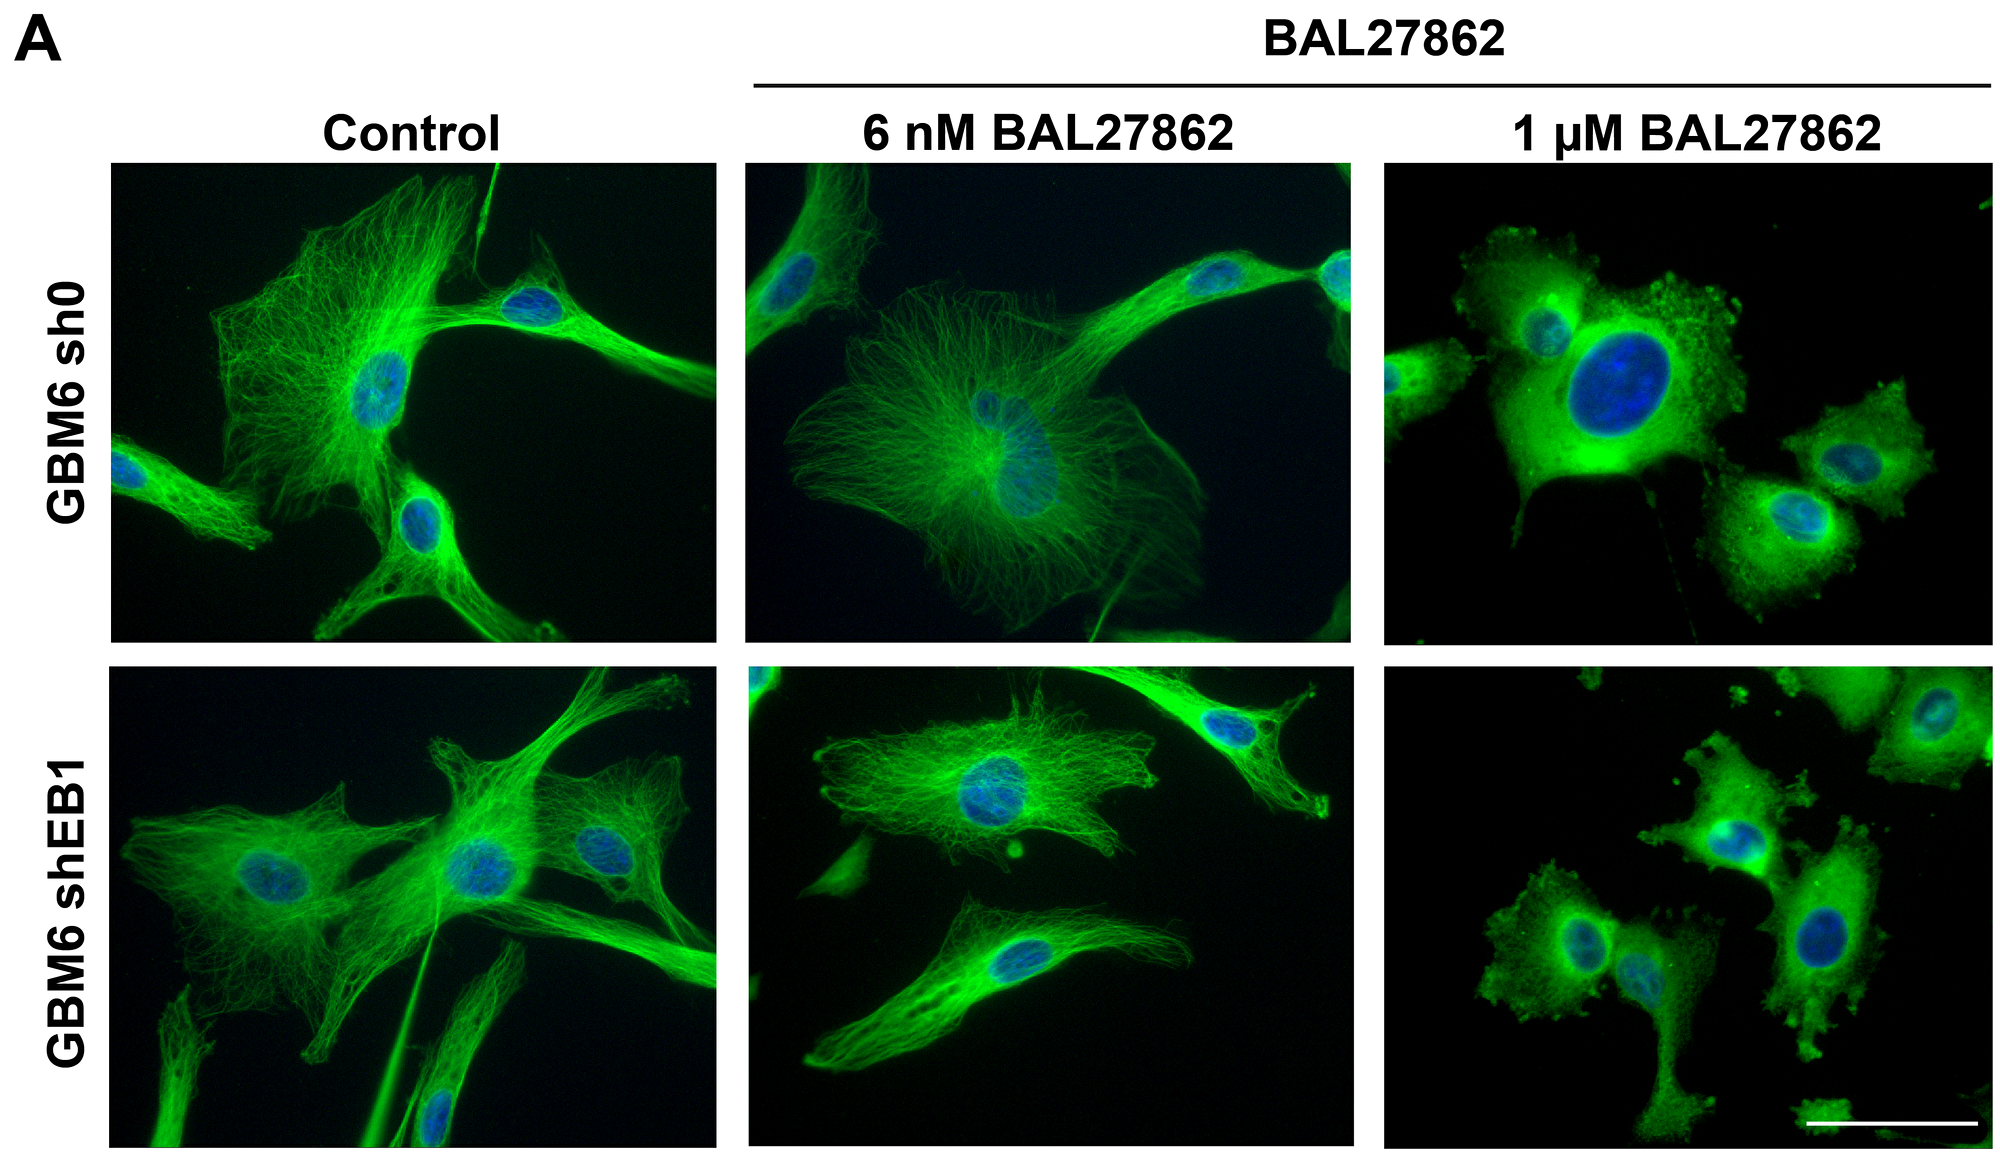 Sub-cytotoxic concentration of BAL27862 does not induce modifications of MT cytoskeleton architecture.